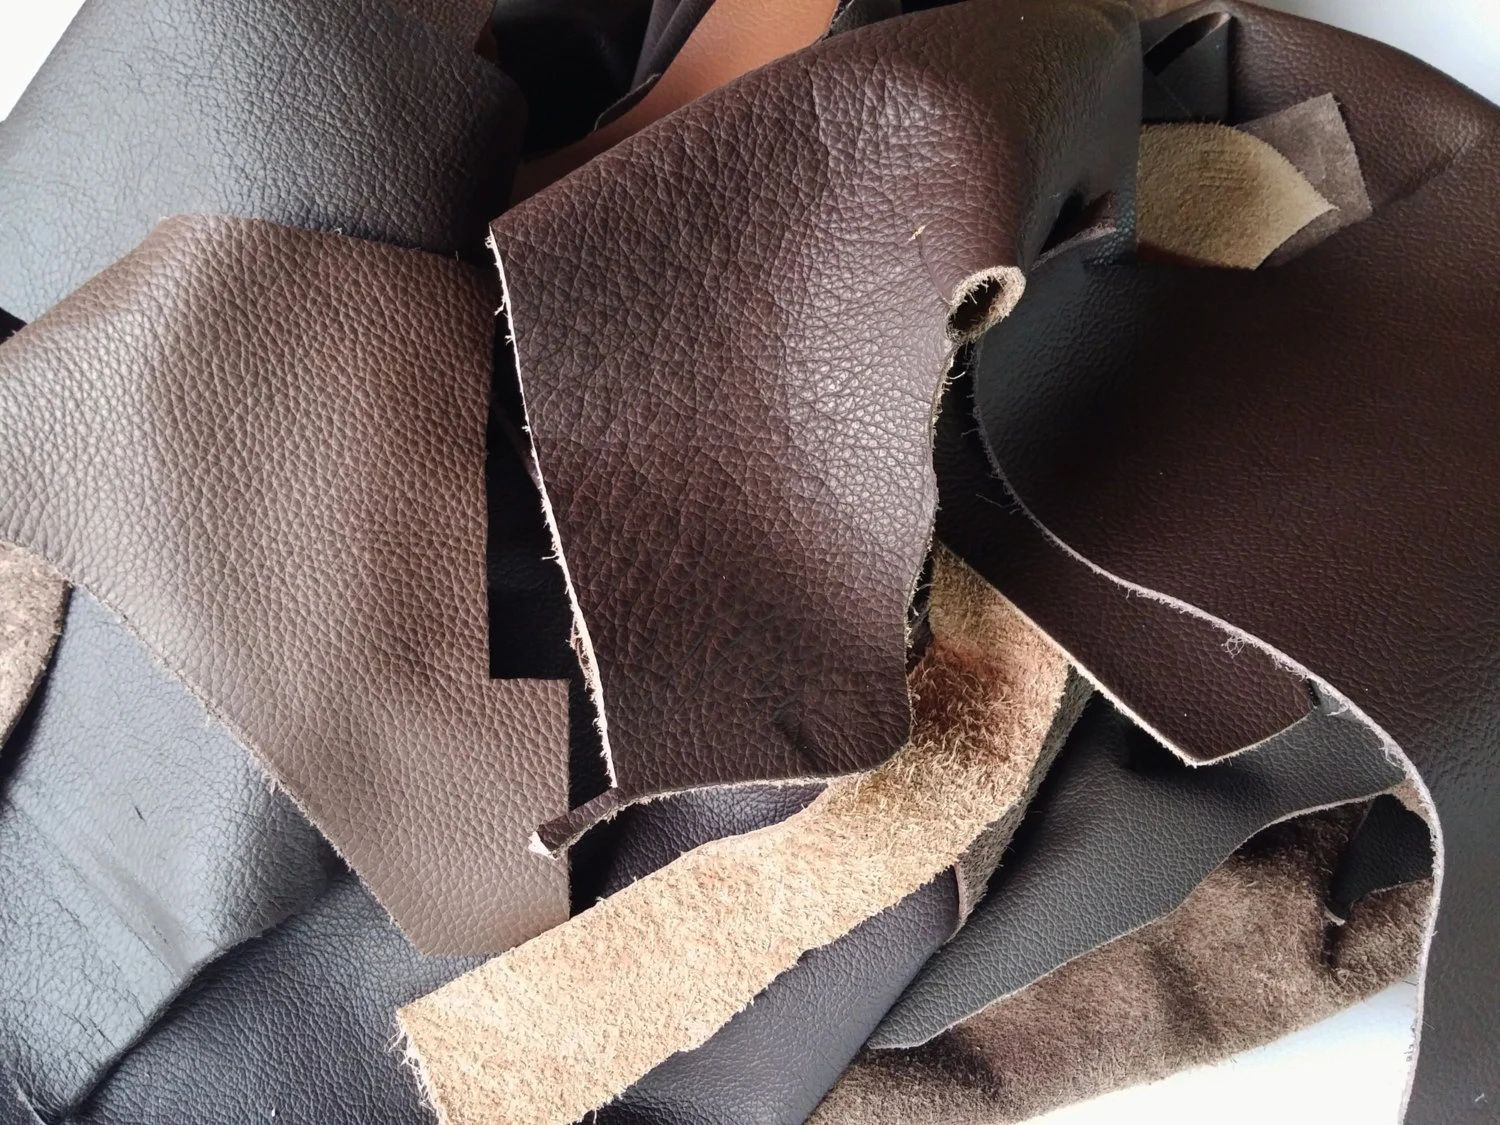 Leather scraps for crafts - Download